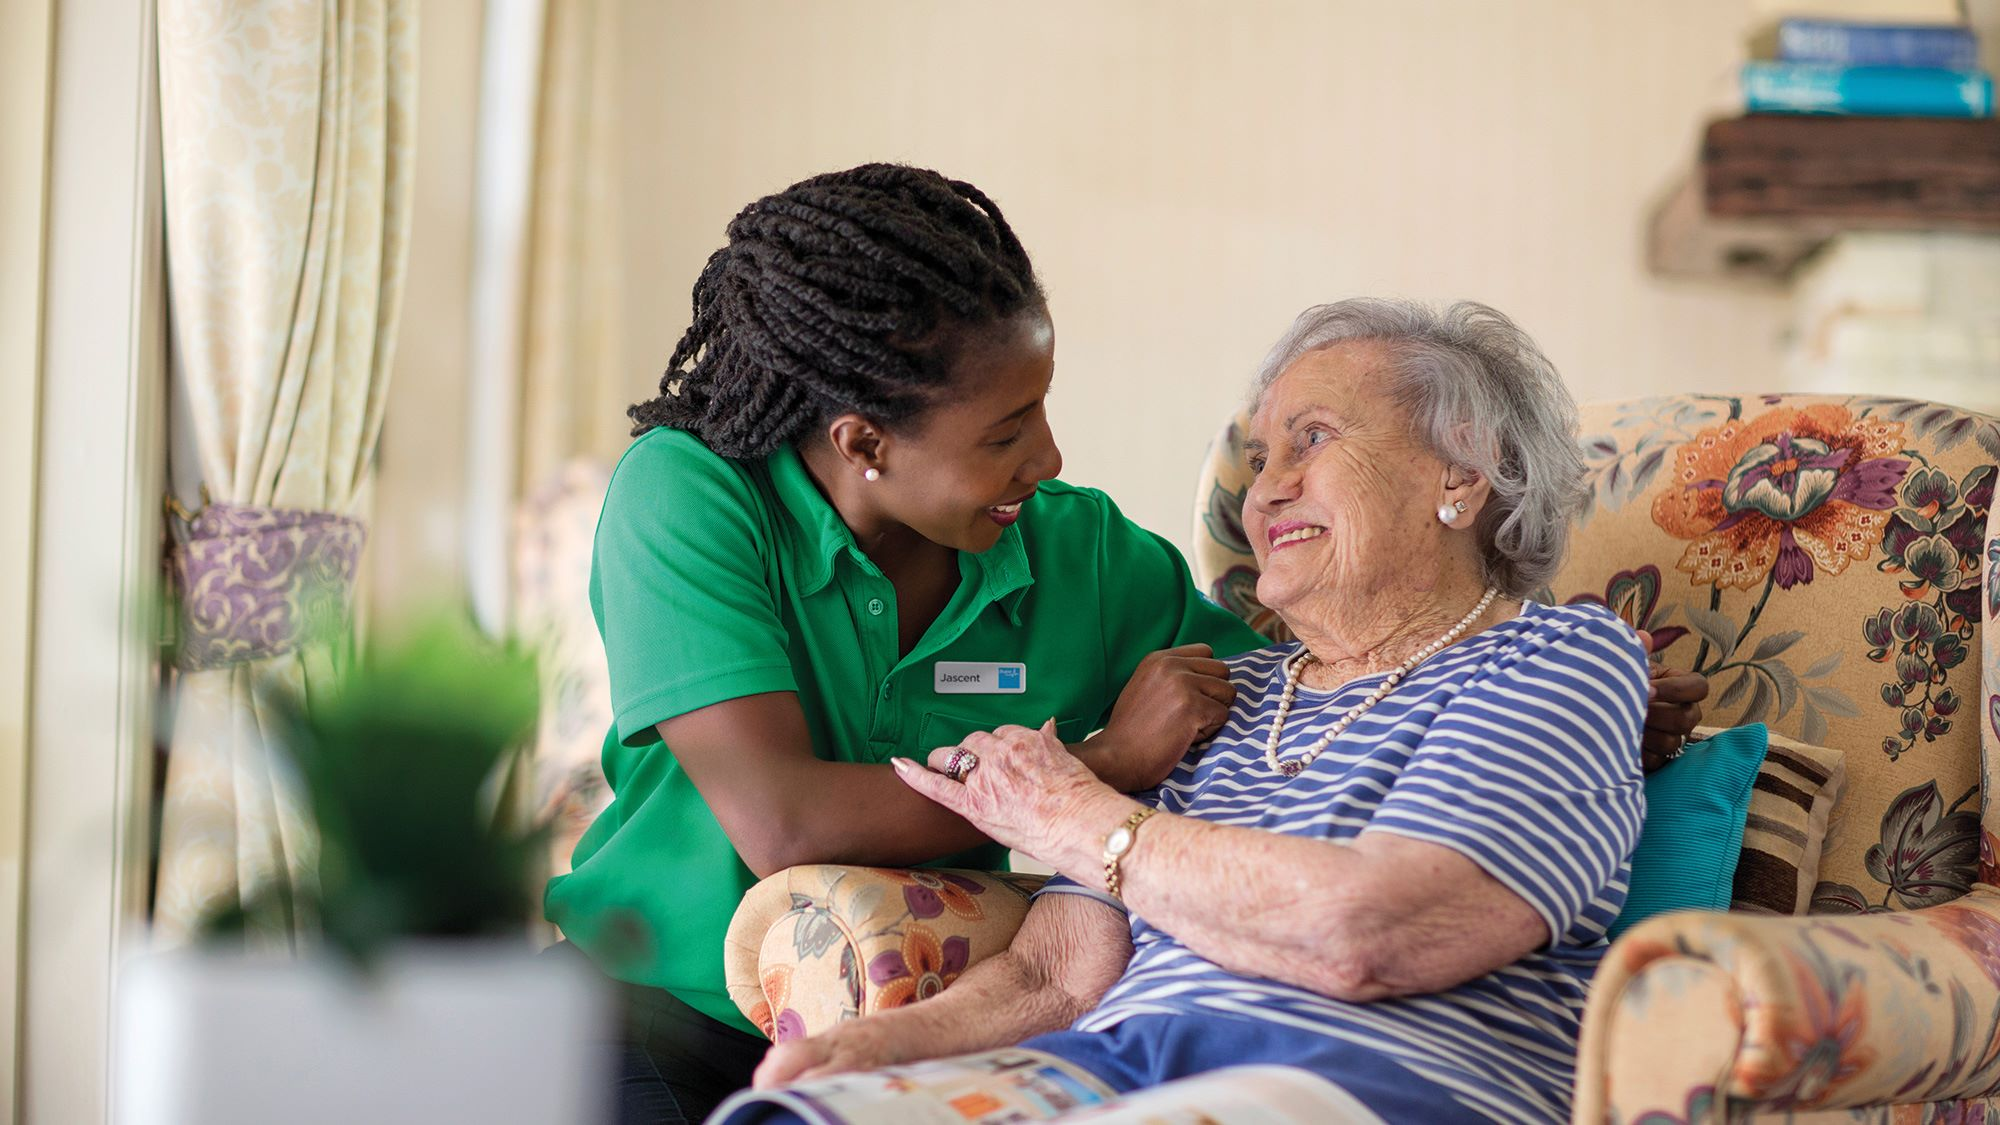 Bupa carer and resident chatting in lounge